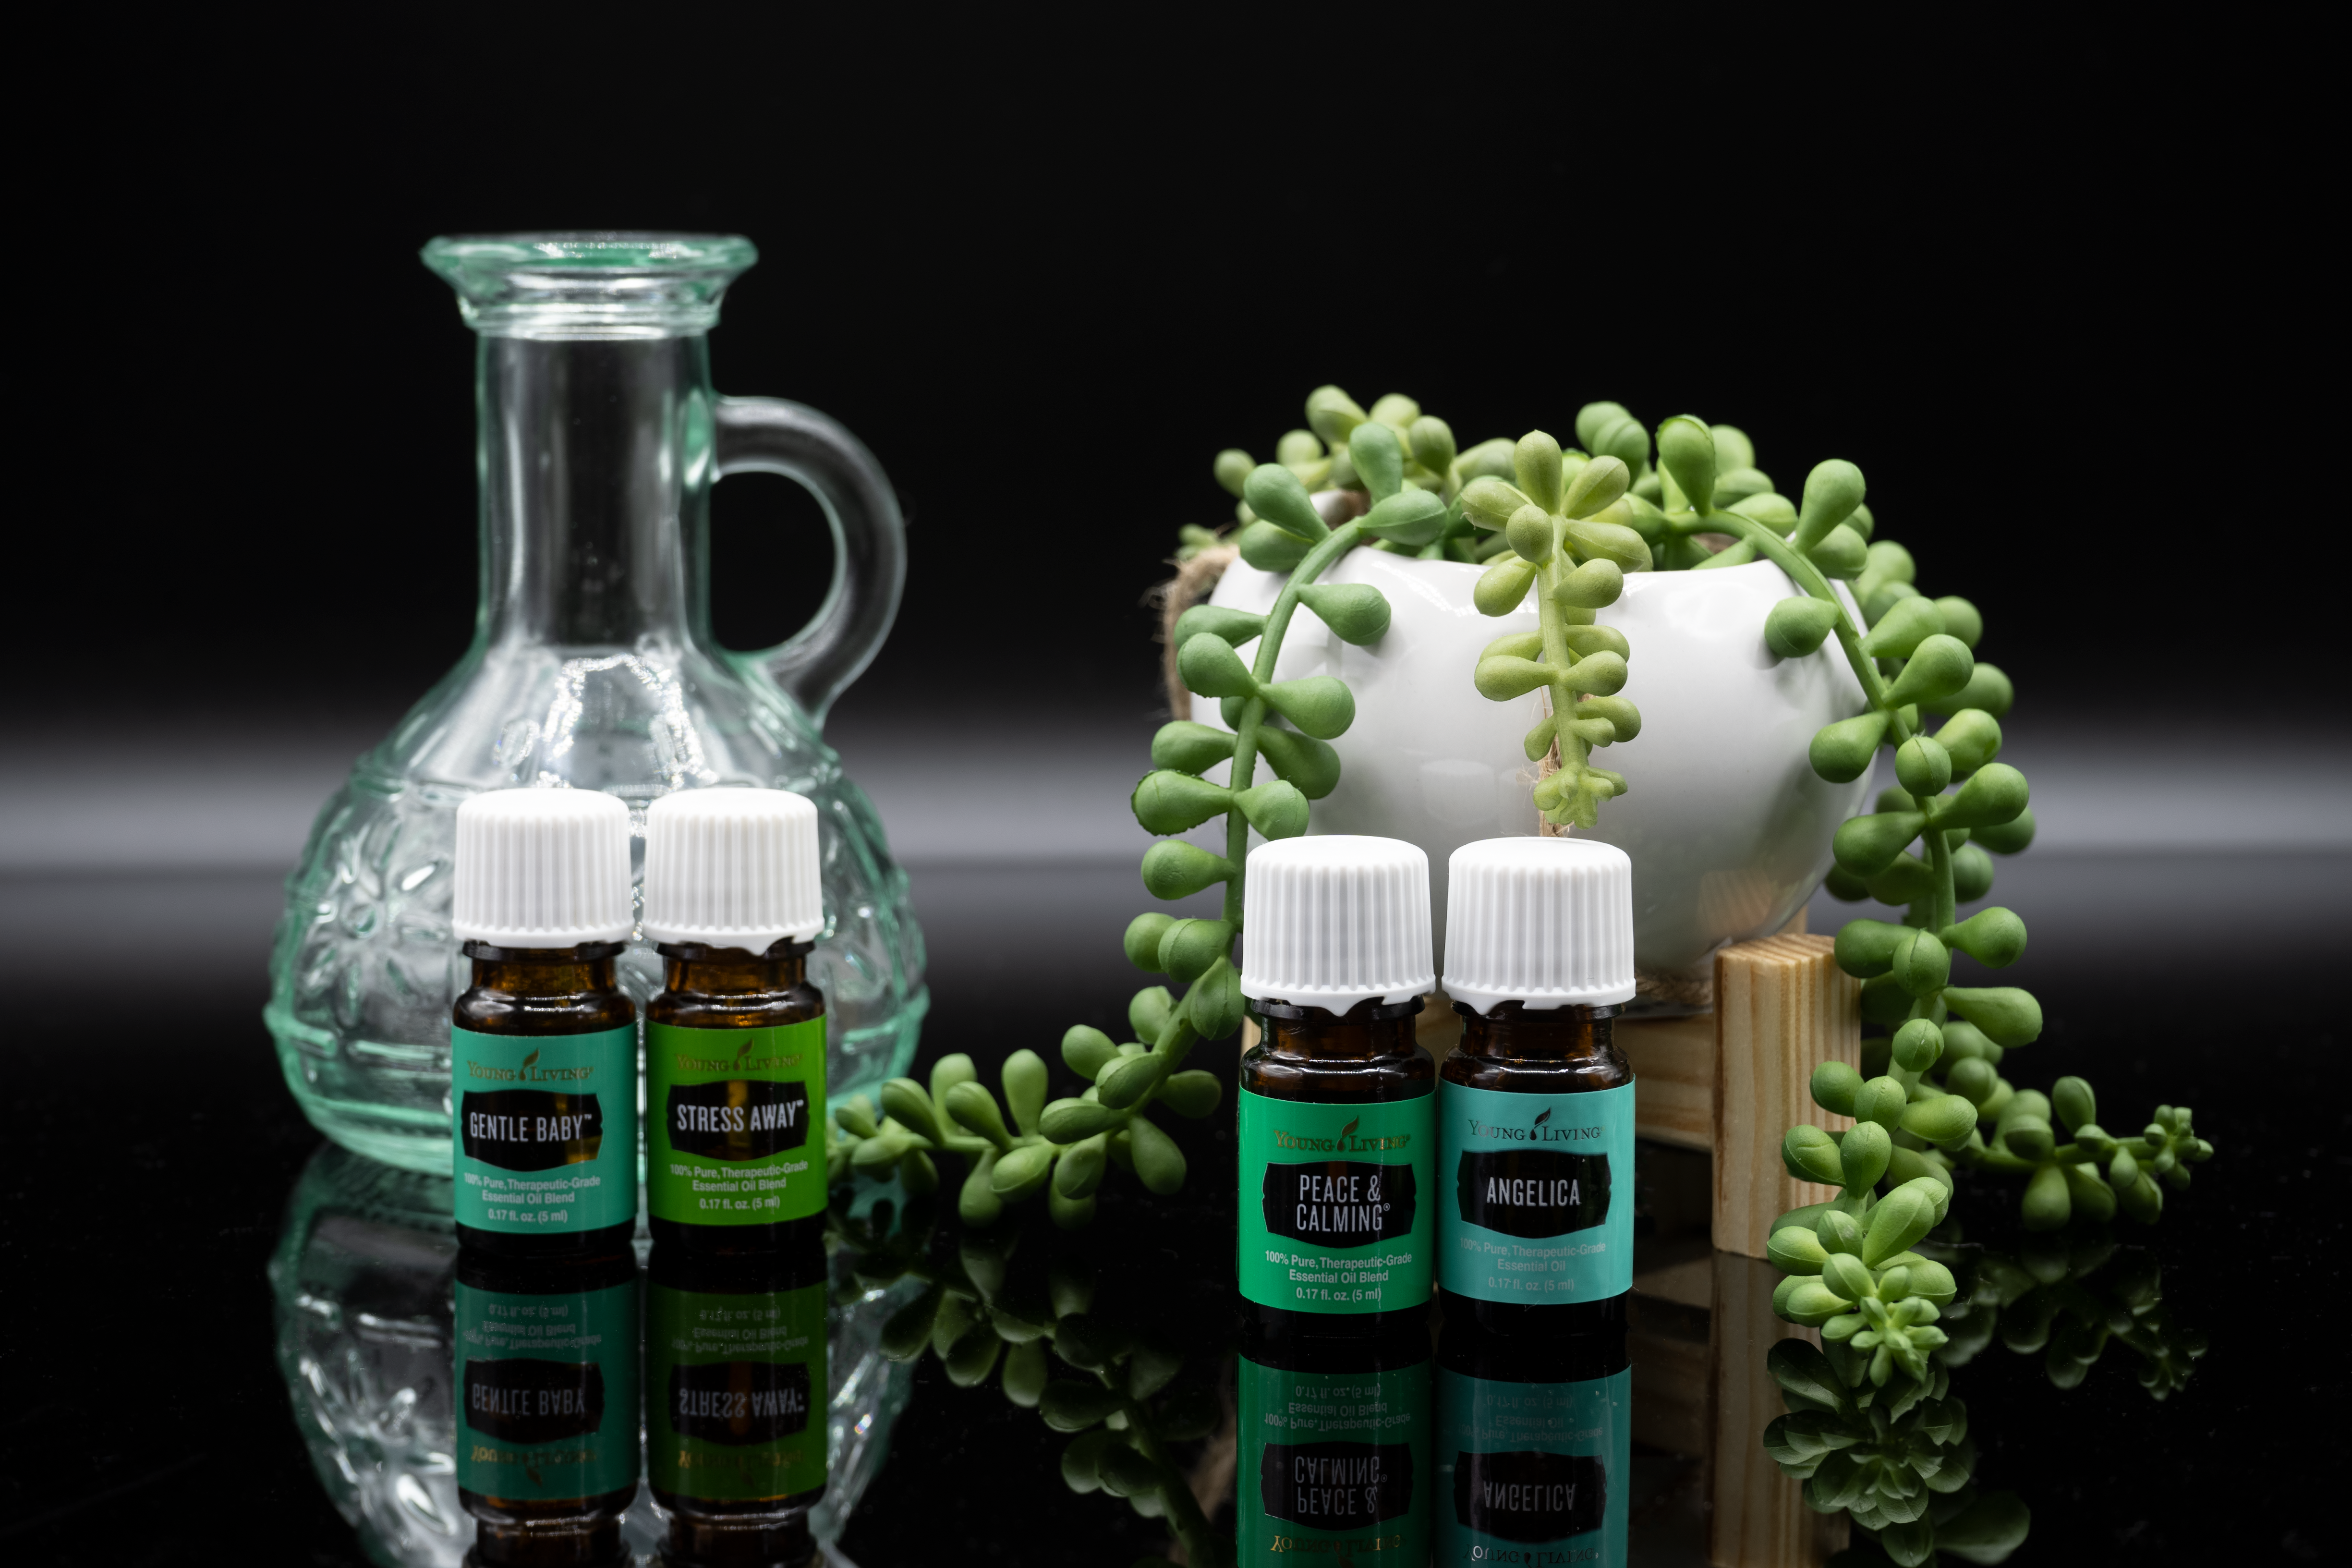 Product photography for bottled goods.